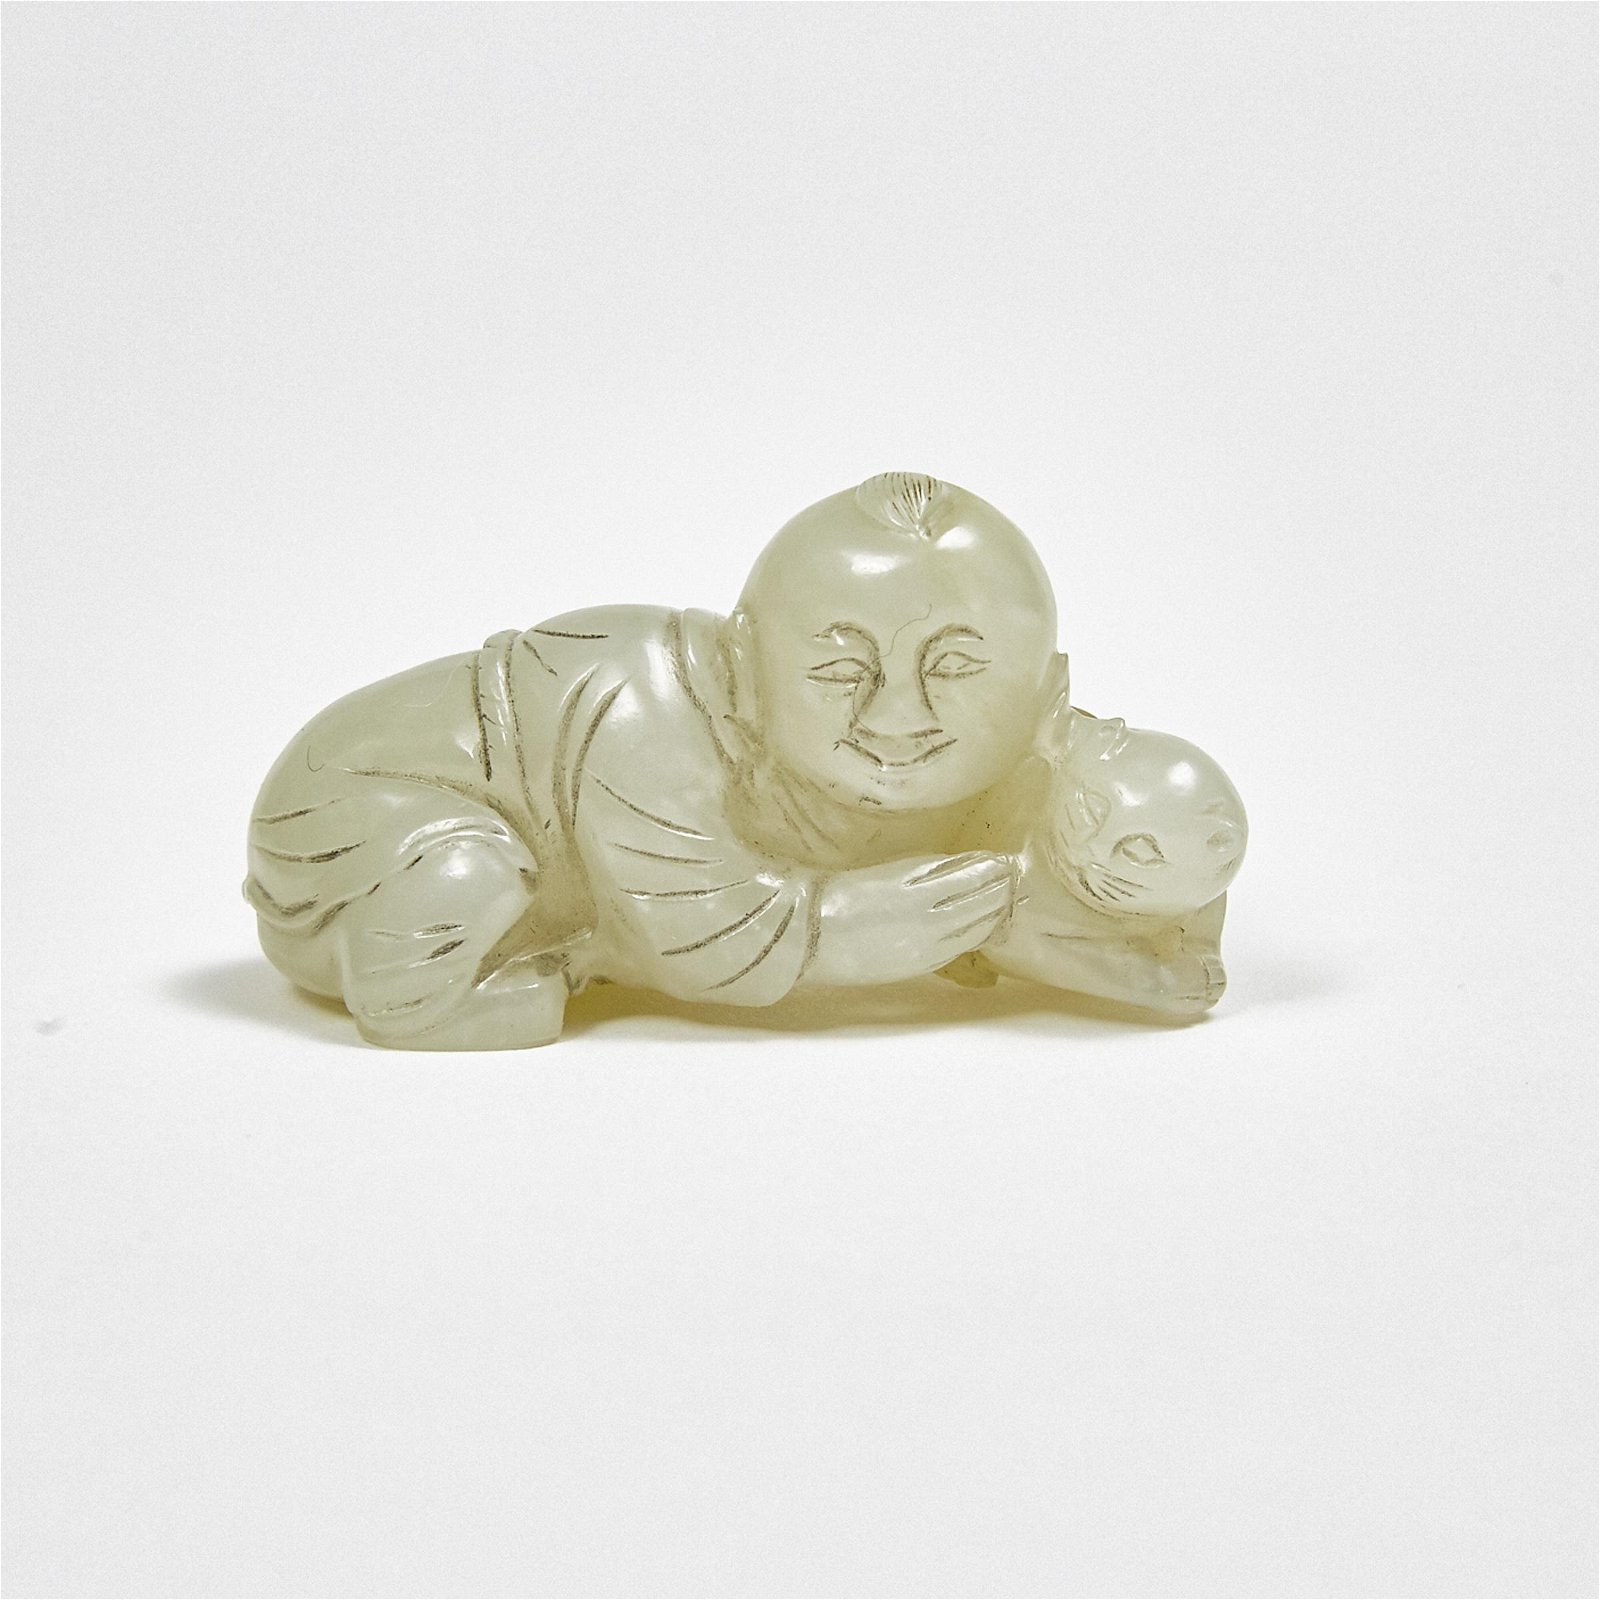 A White Jade Boy with Cat Carving, Qing Dynasty